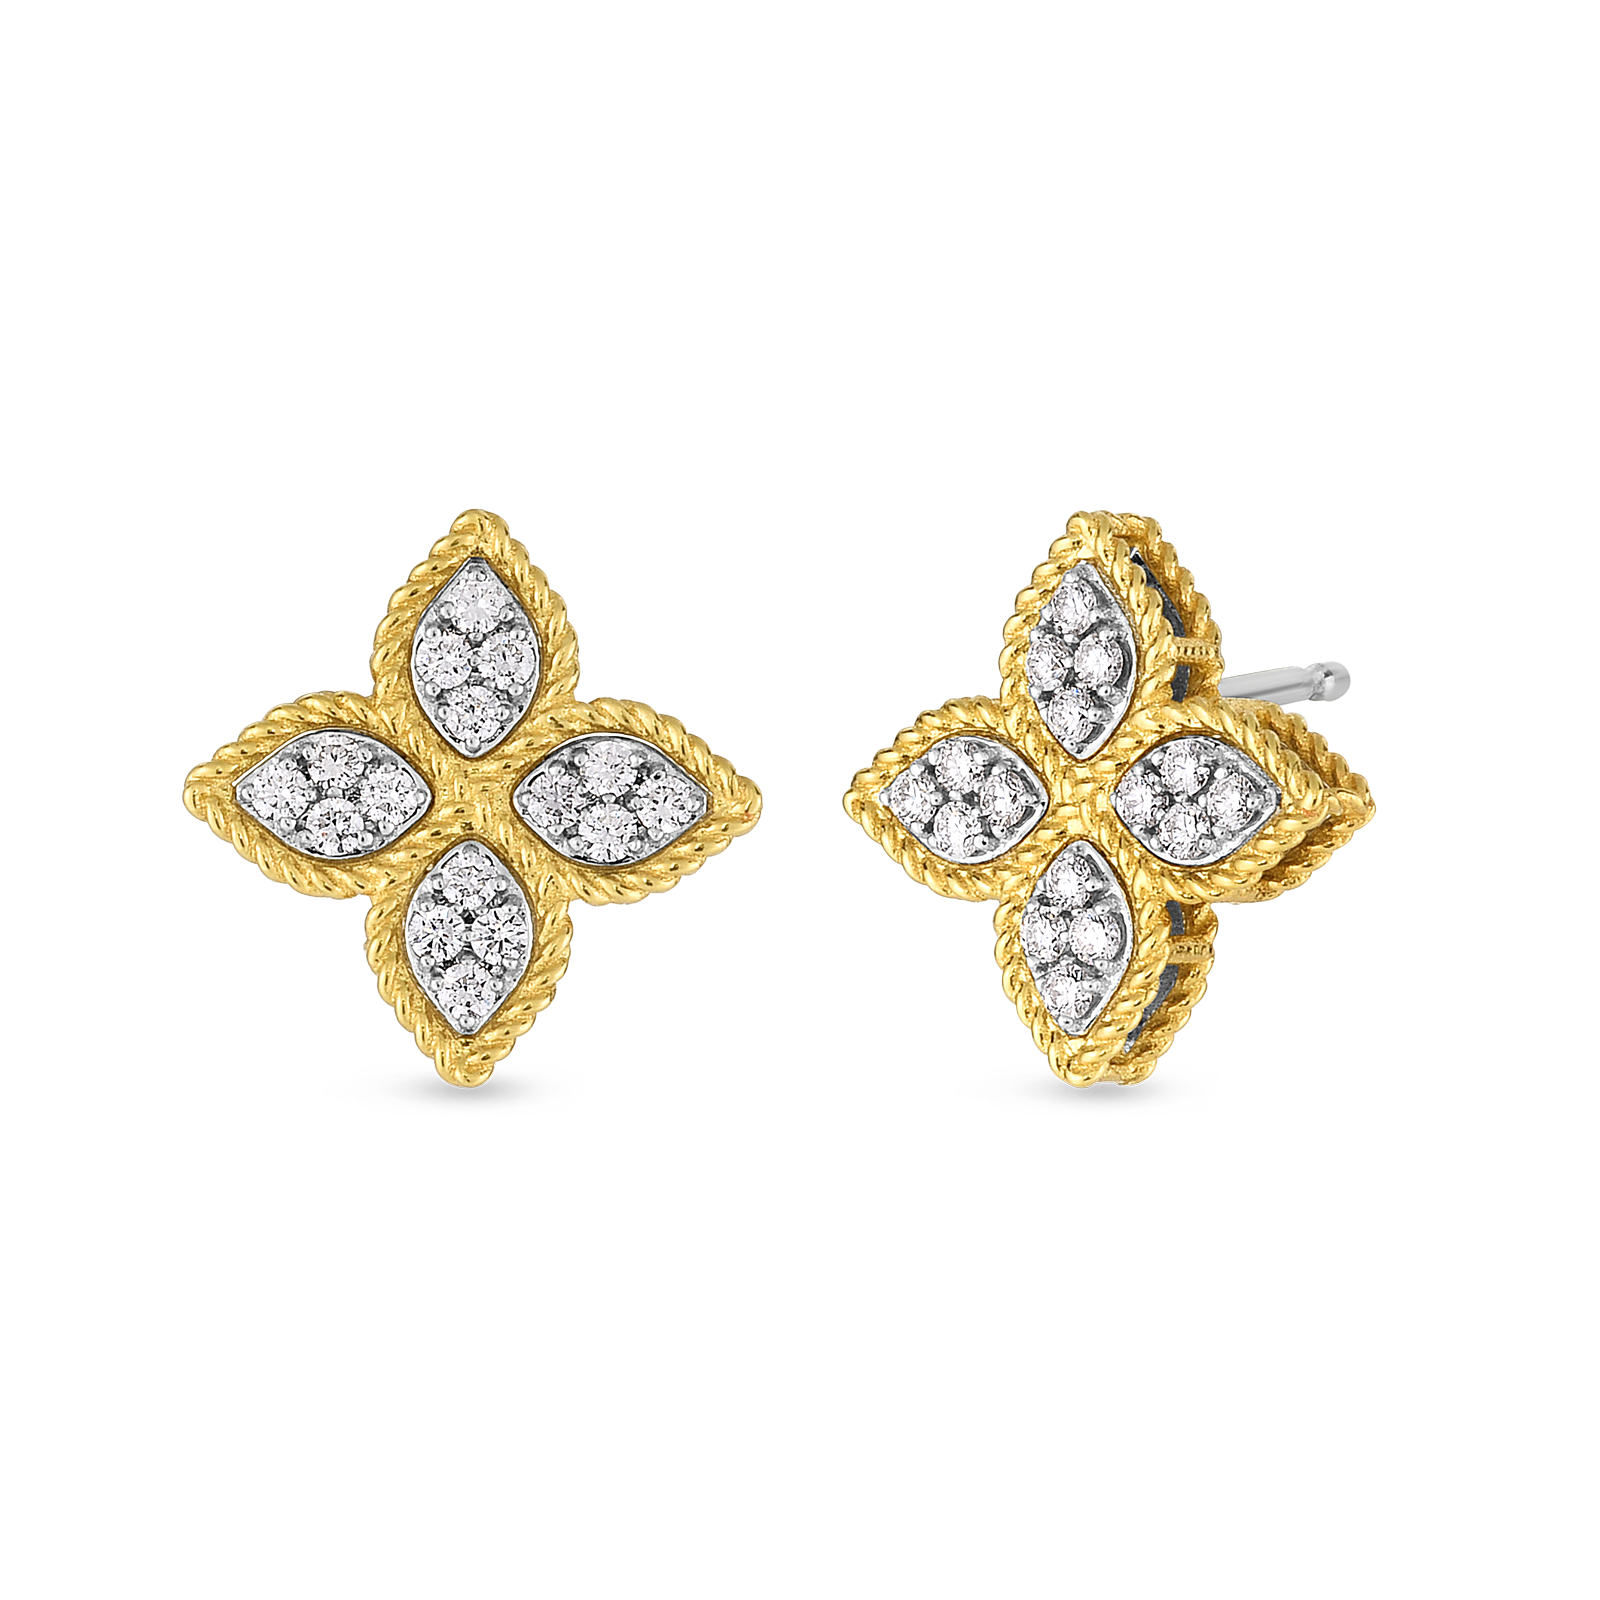 Roberto Coin 18K Yellow Gold Princess Flower Earrings With Diamonds